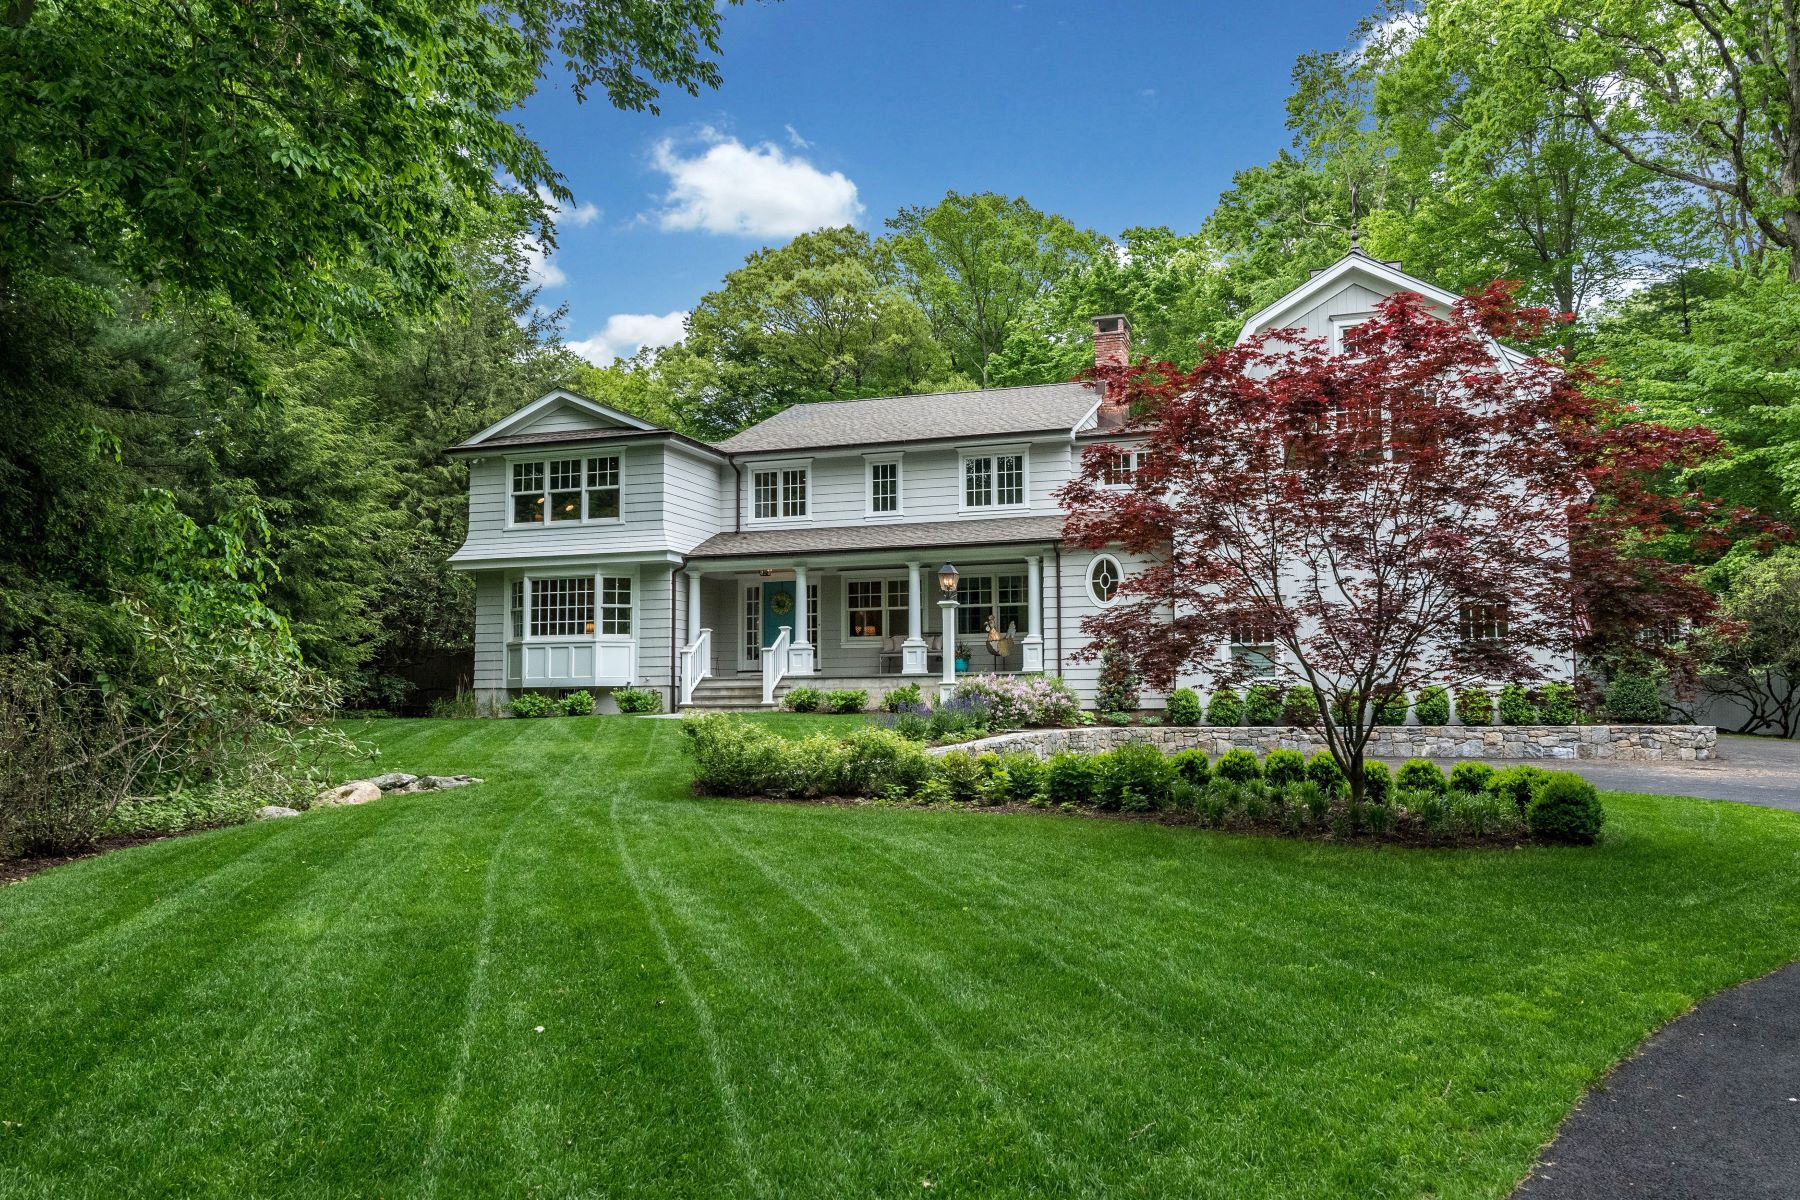 Single Family Home for Sale at 33 Crooked Mile Road 33 Crooked Mile Road Darien, Connecticut 06820 United States